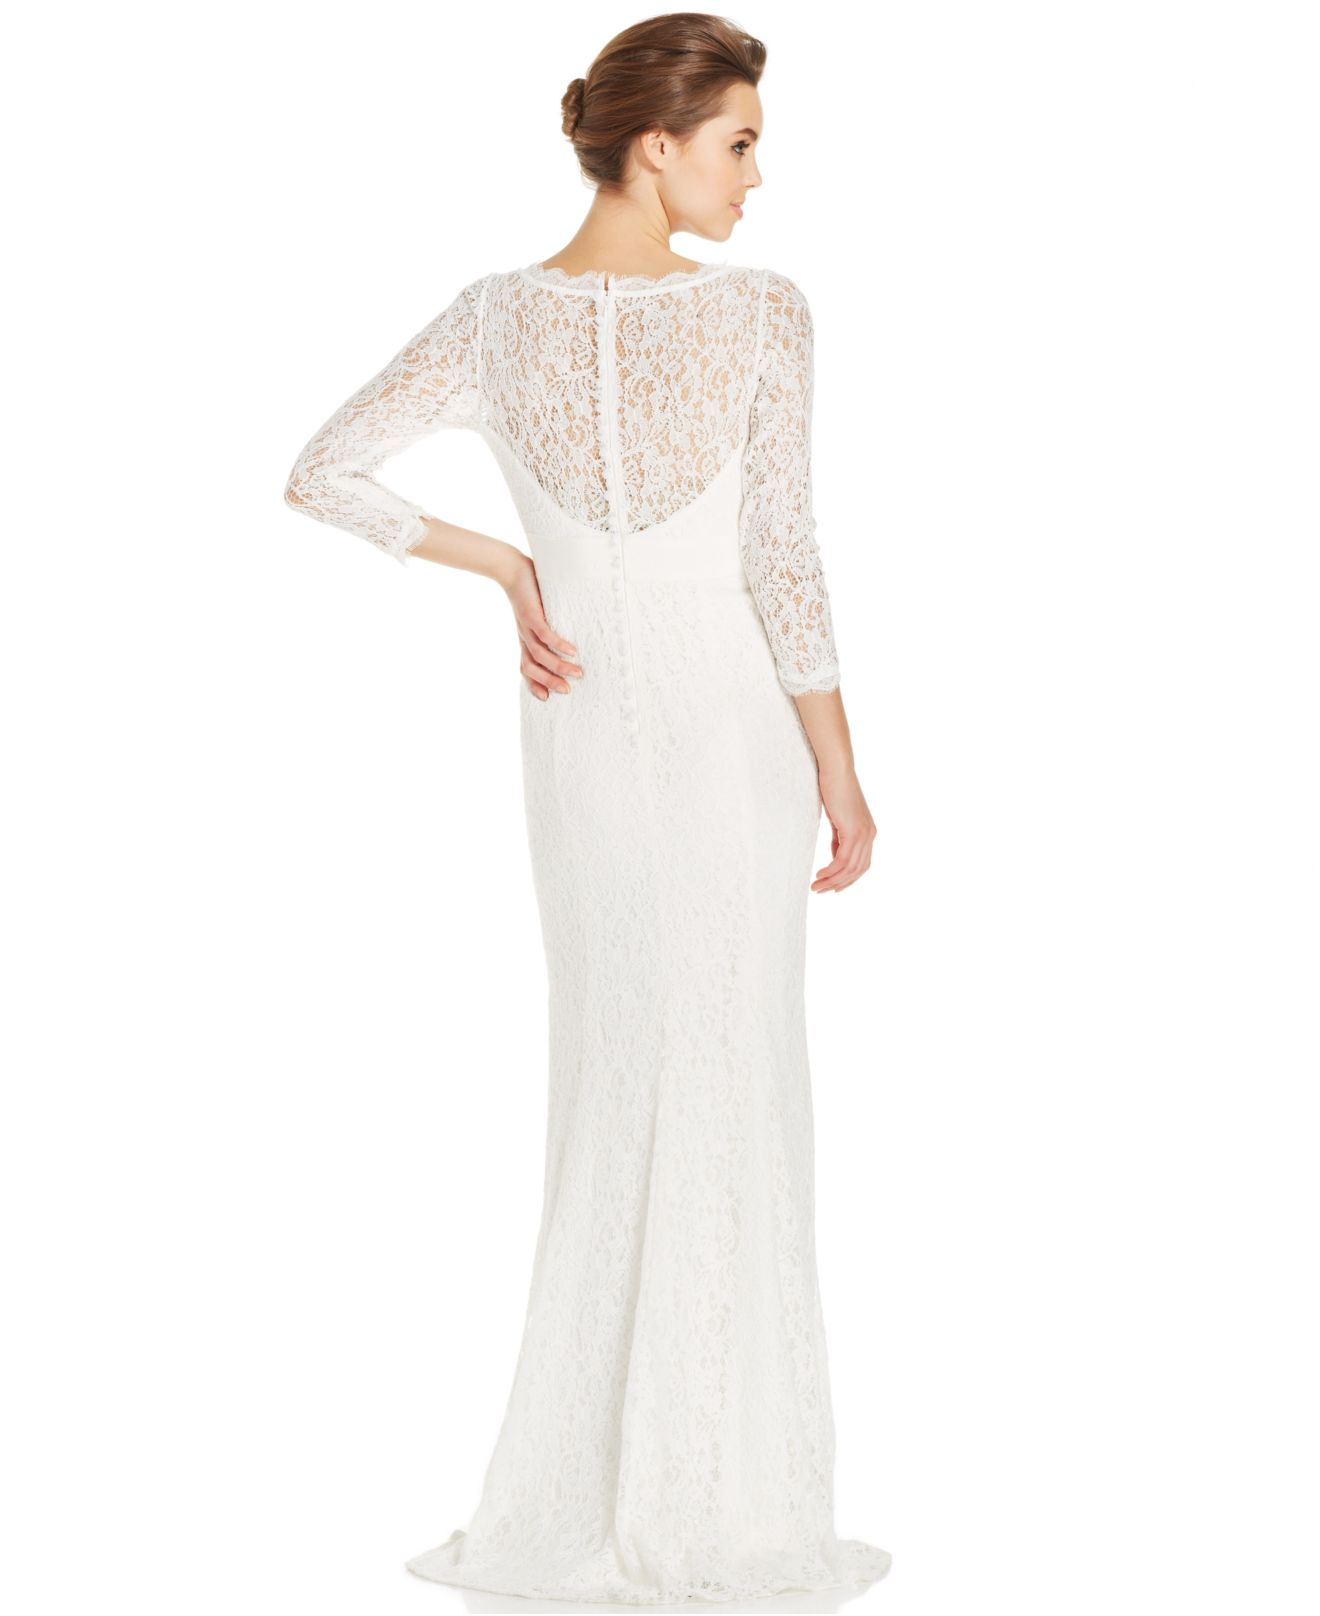 Lyst - Adrianna Papell Illusion Lace Embellished Gown in White